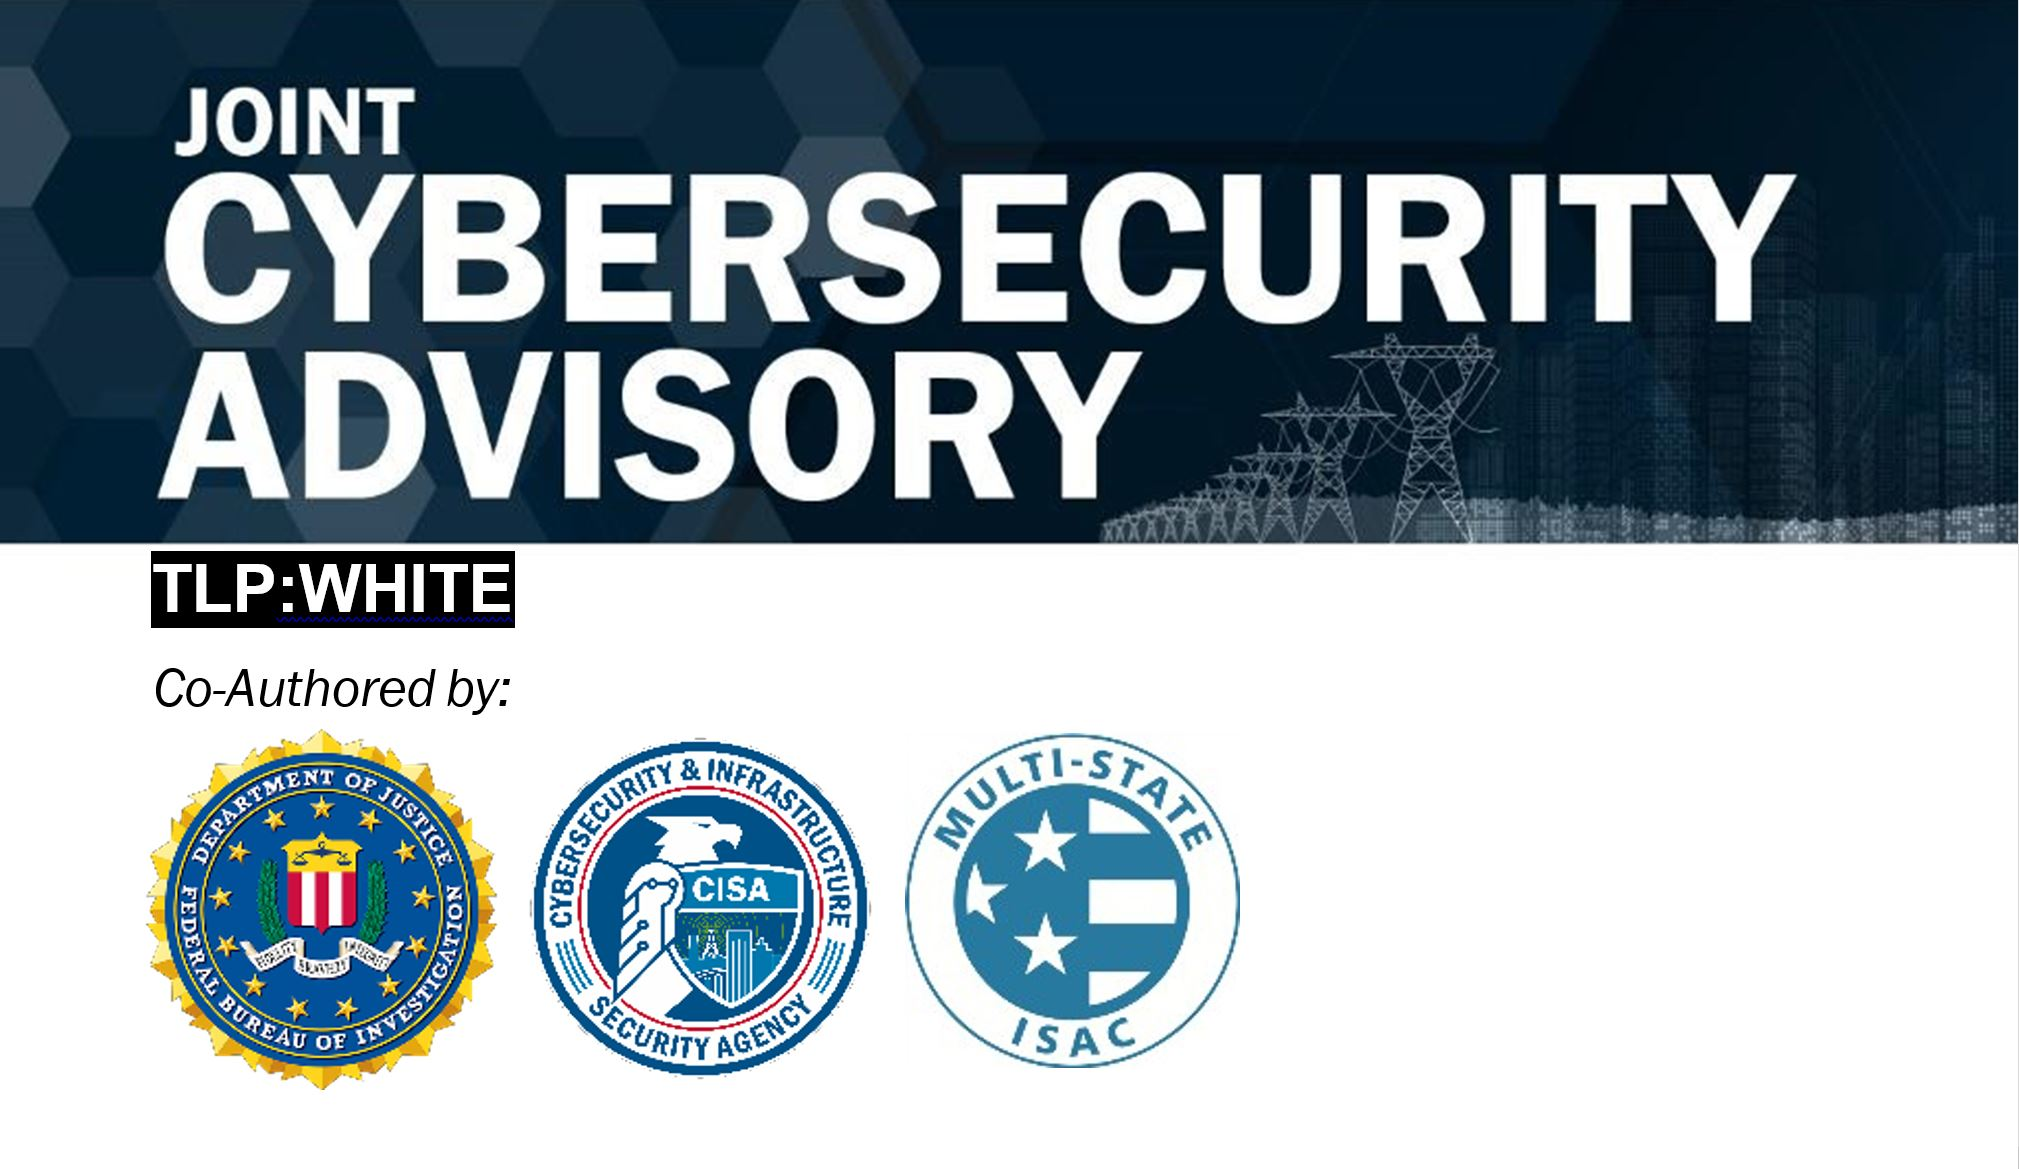 Cyber Security Advisory